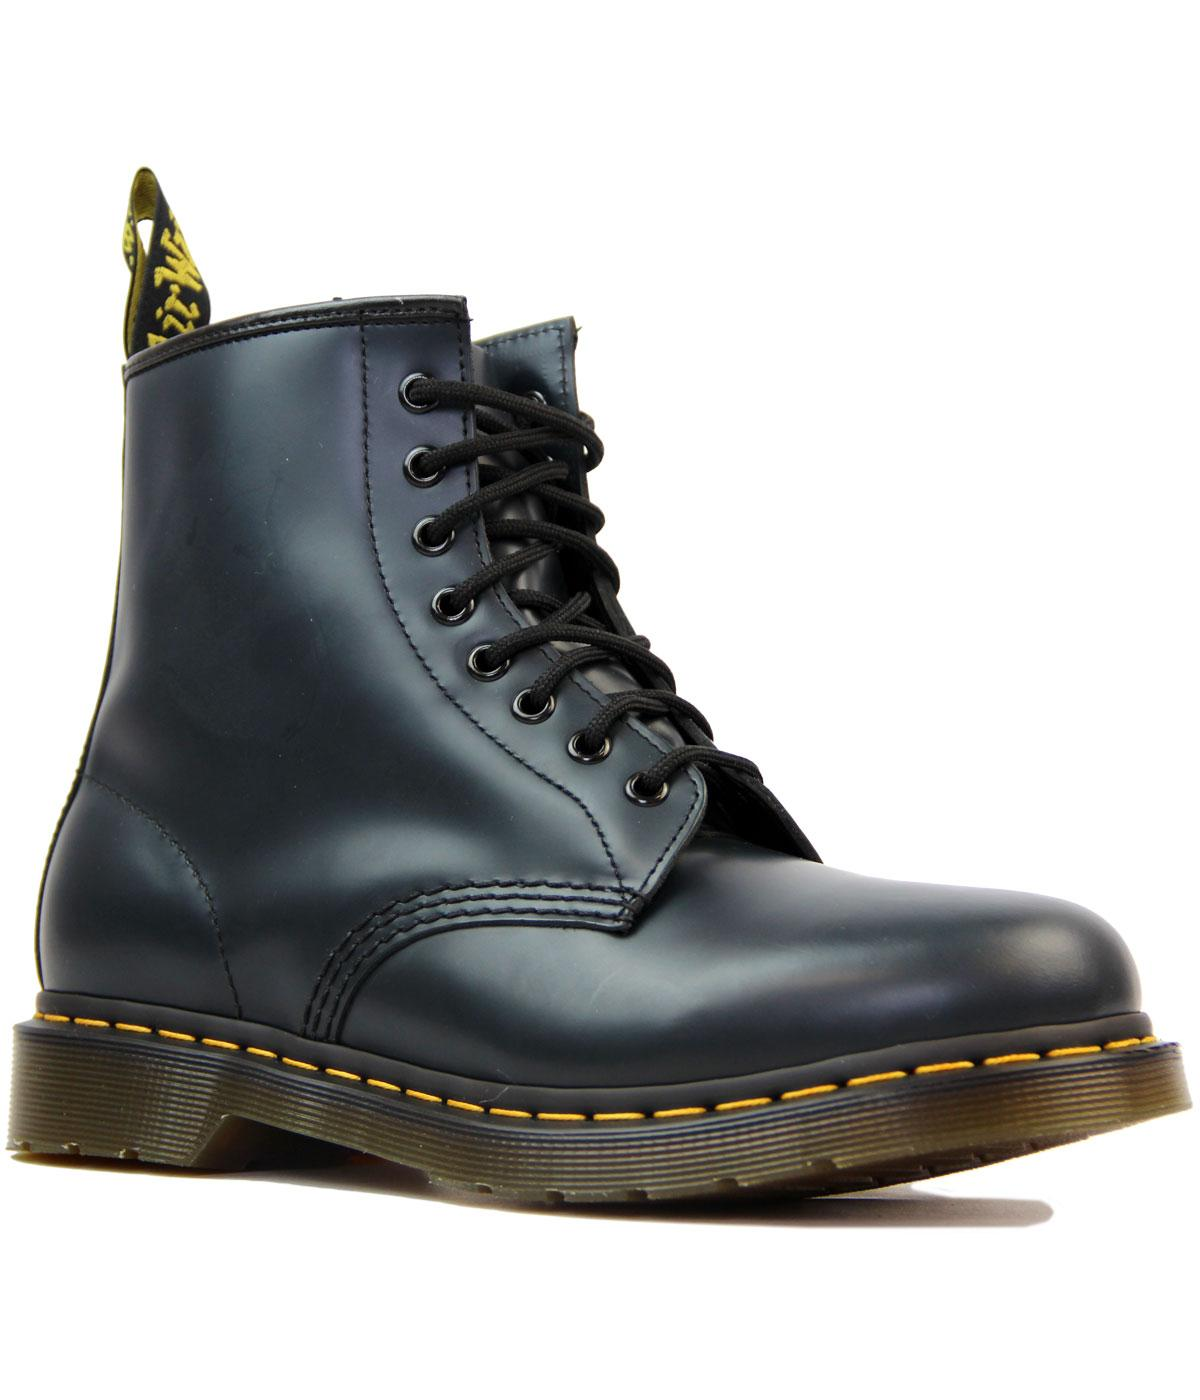 1460 DR MARTENS Retro Mod Smooth Navy Boots